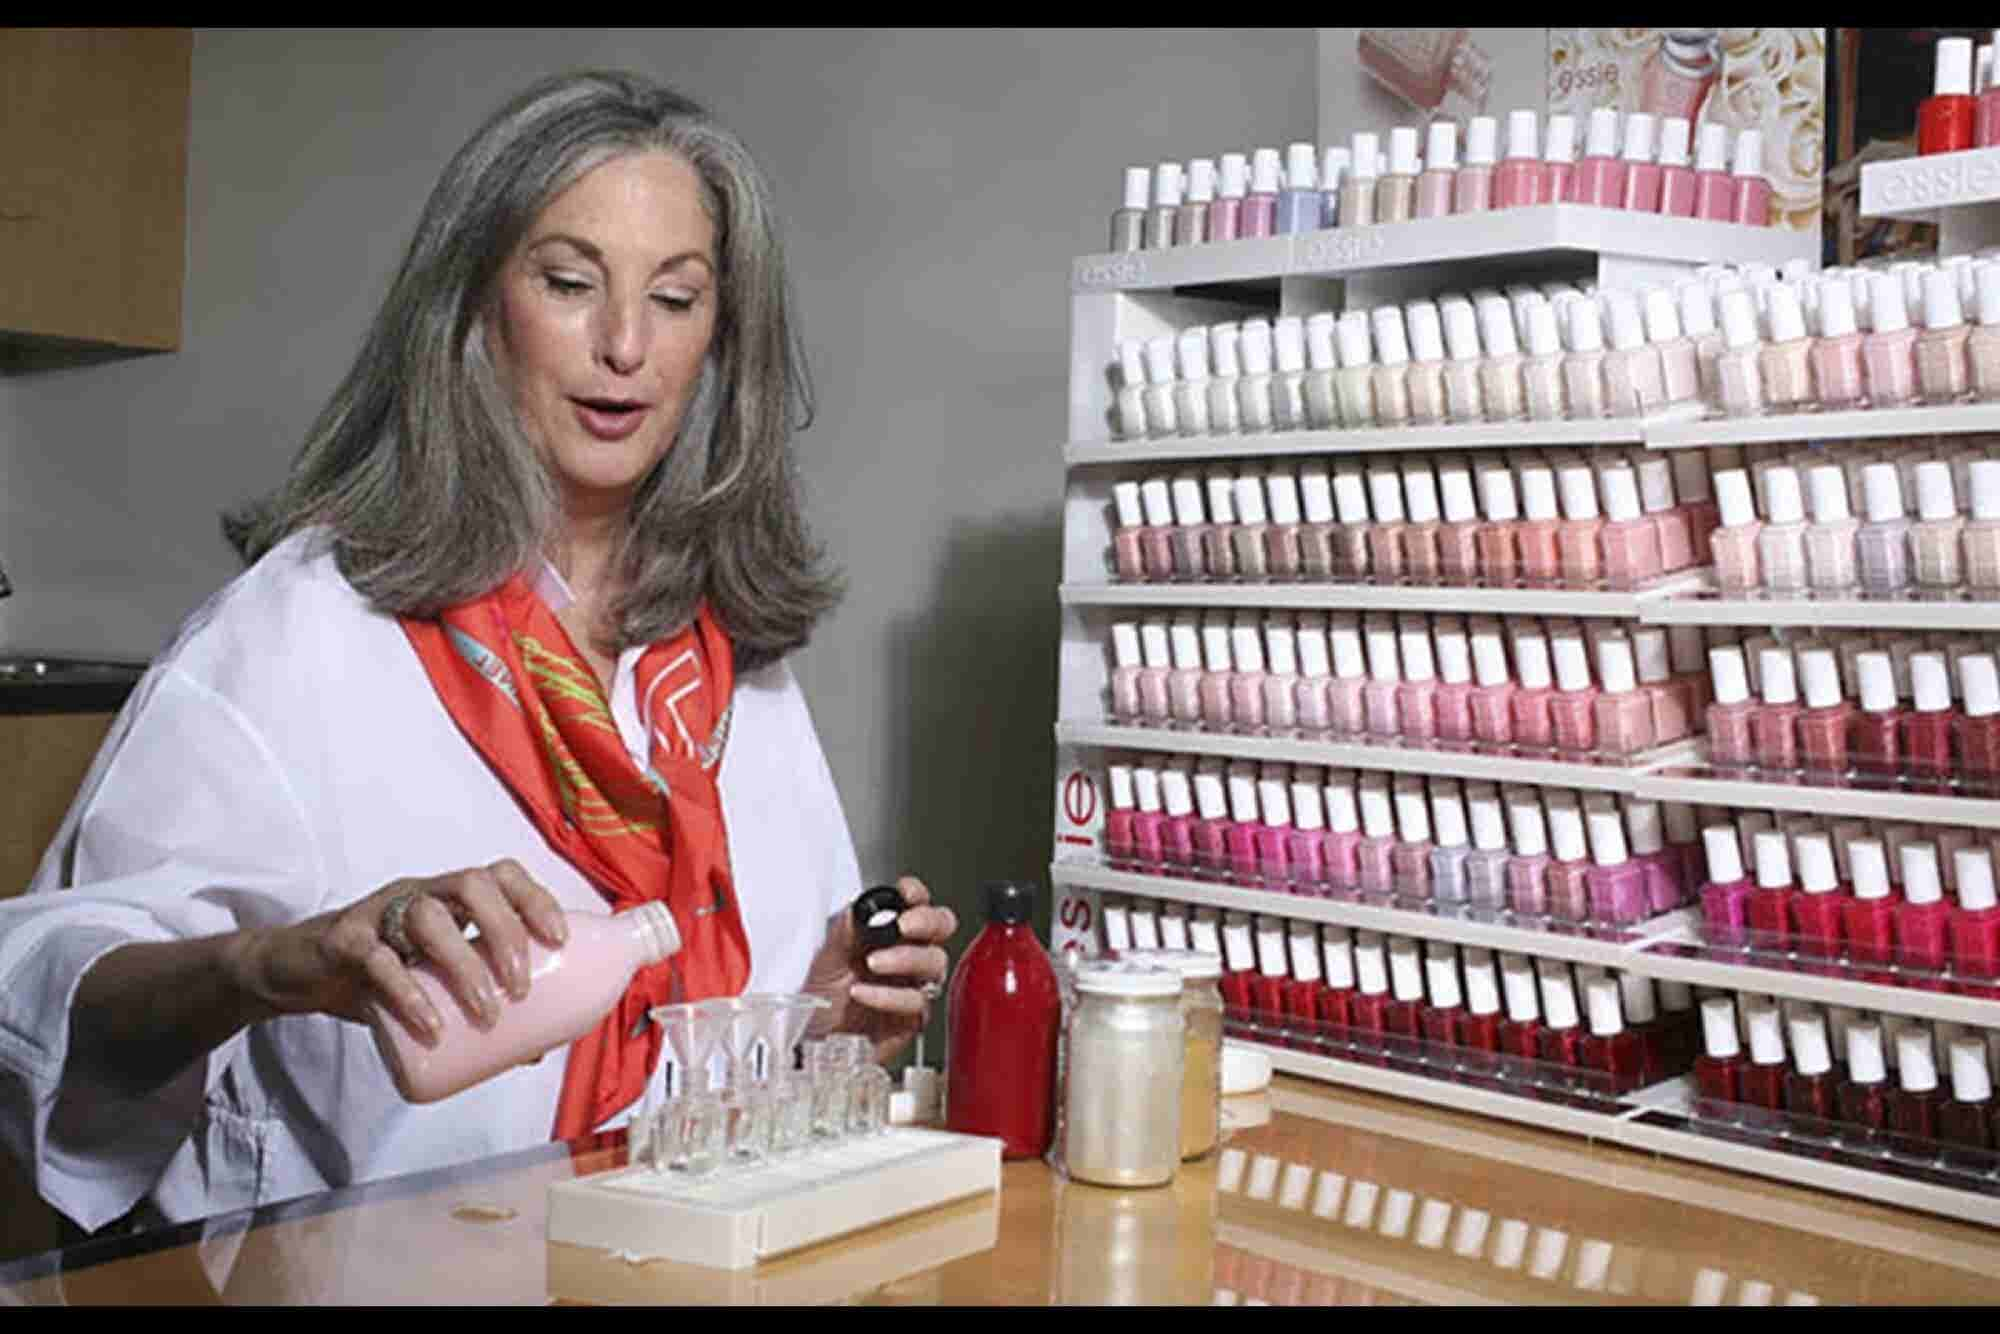 The Founder of Essie Reflects on the Evolution of Her Iconic Nail Polish Brand